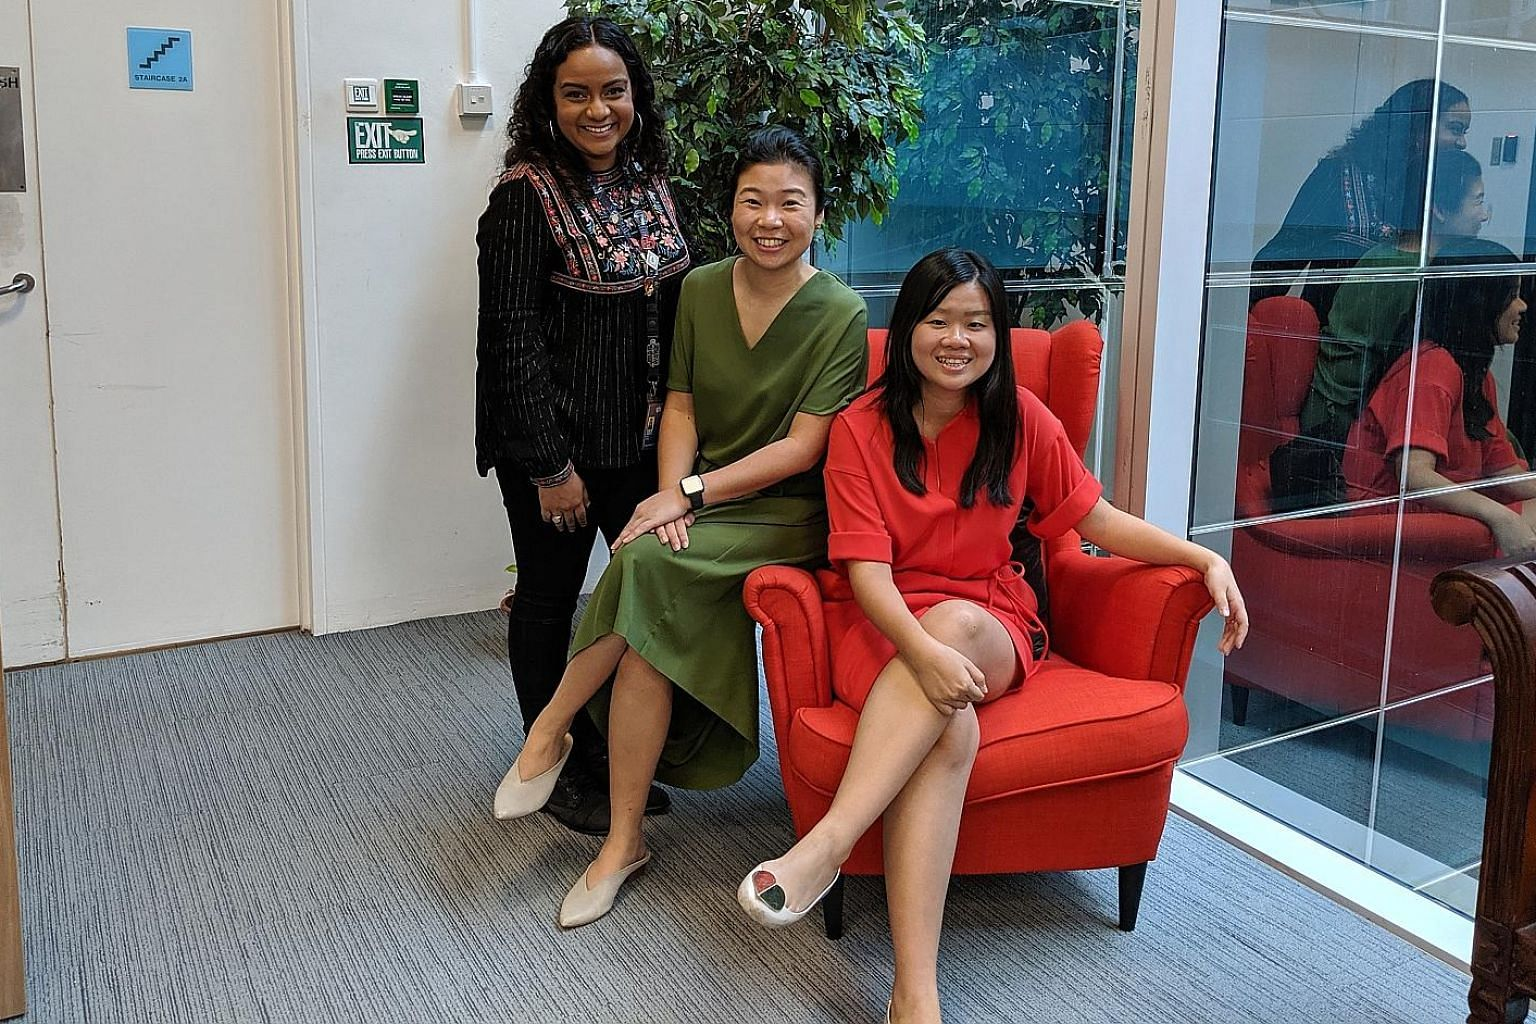 Join journalists (from left) Anjali Raguraman, Melissa Sim and Eunice Quek for this week's Life Picks.